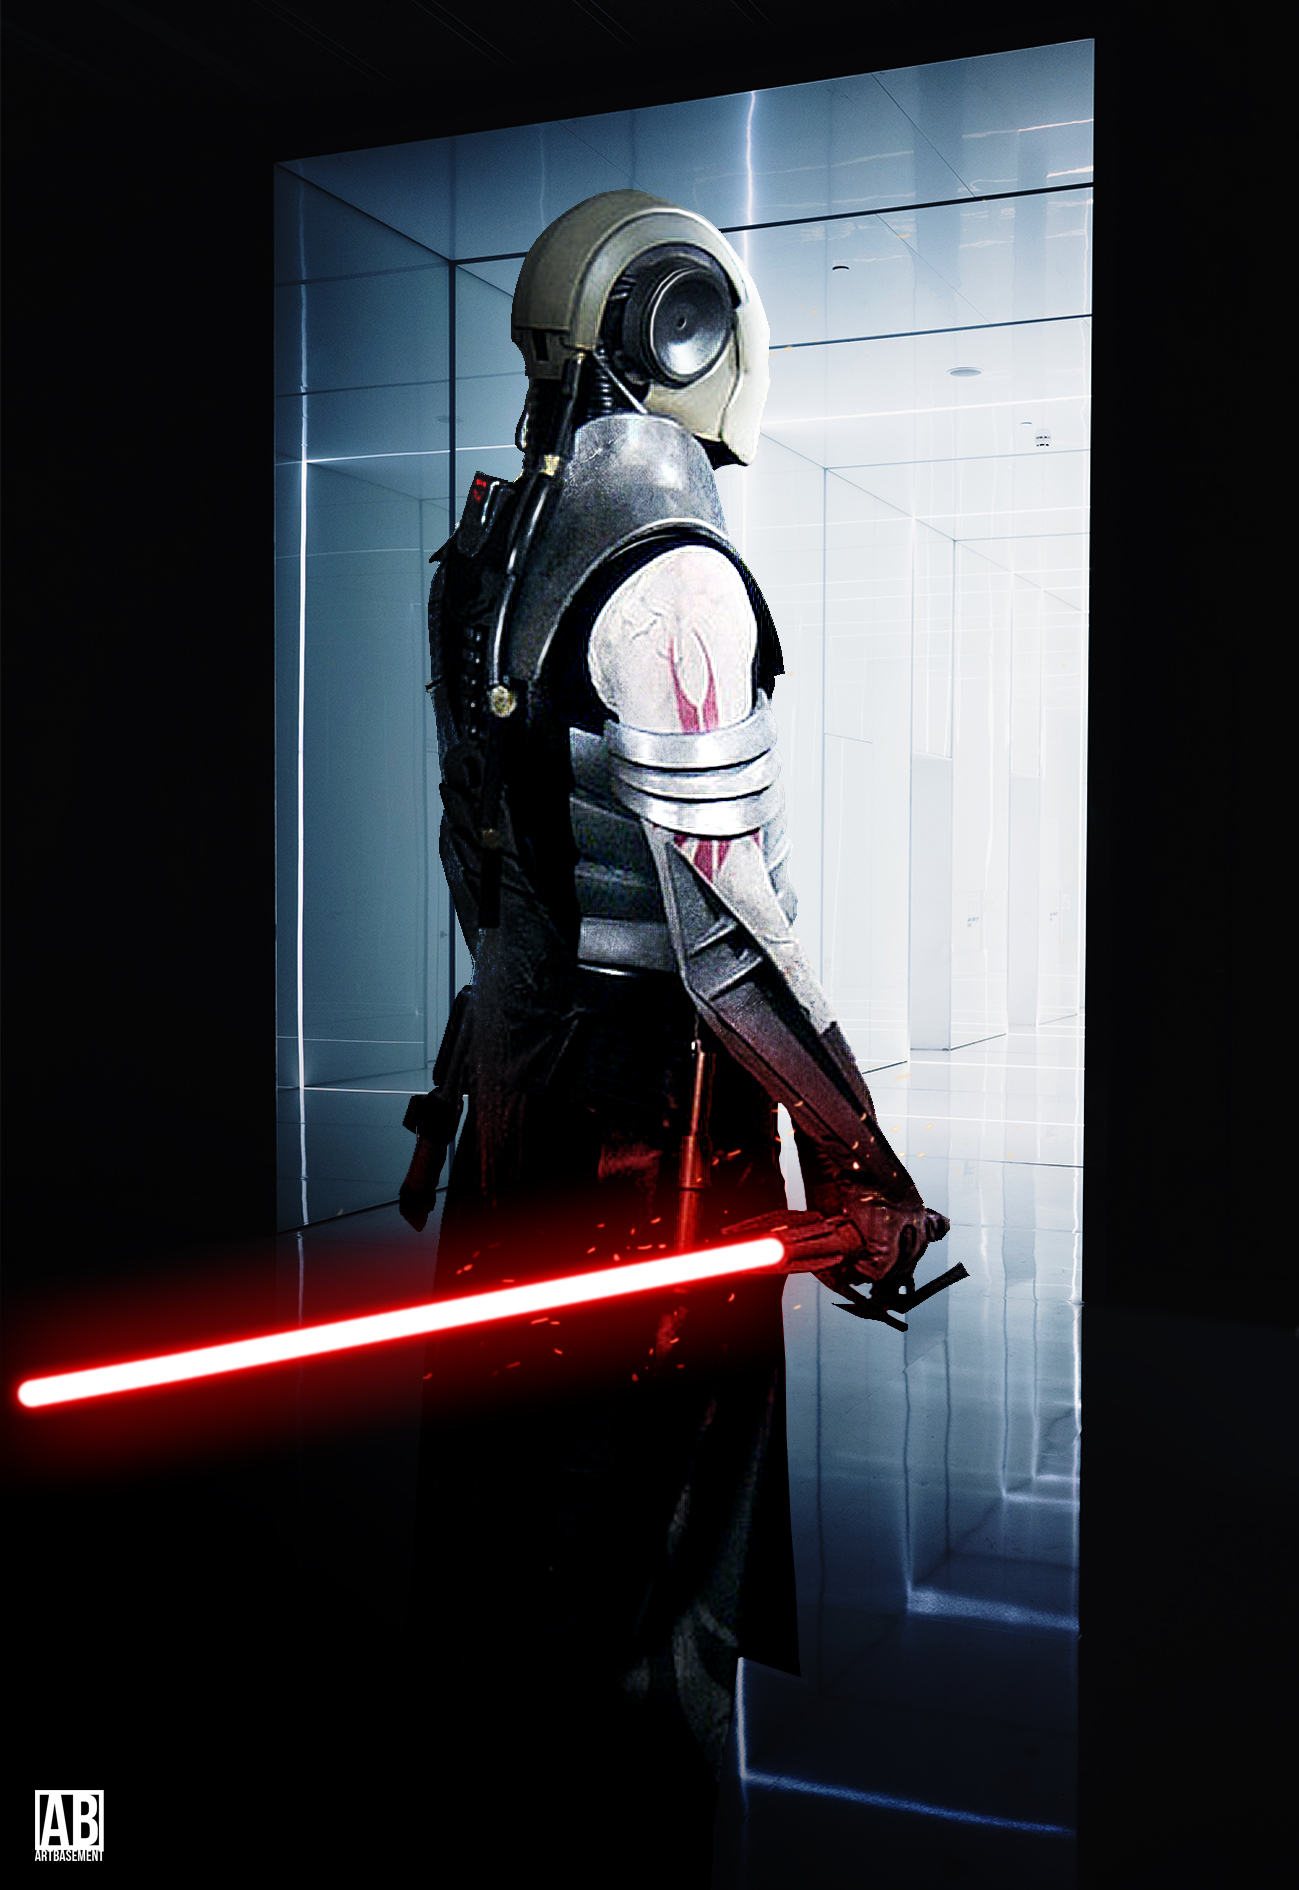 star wars sith stalker lightsaber pictures to pin on